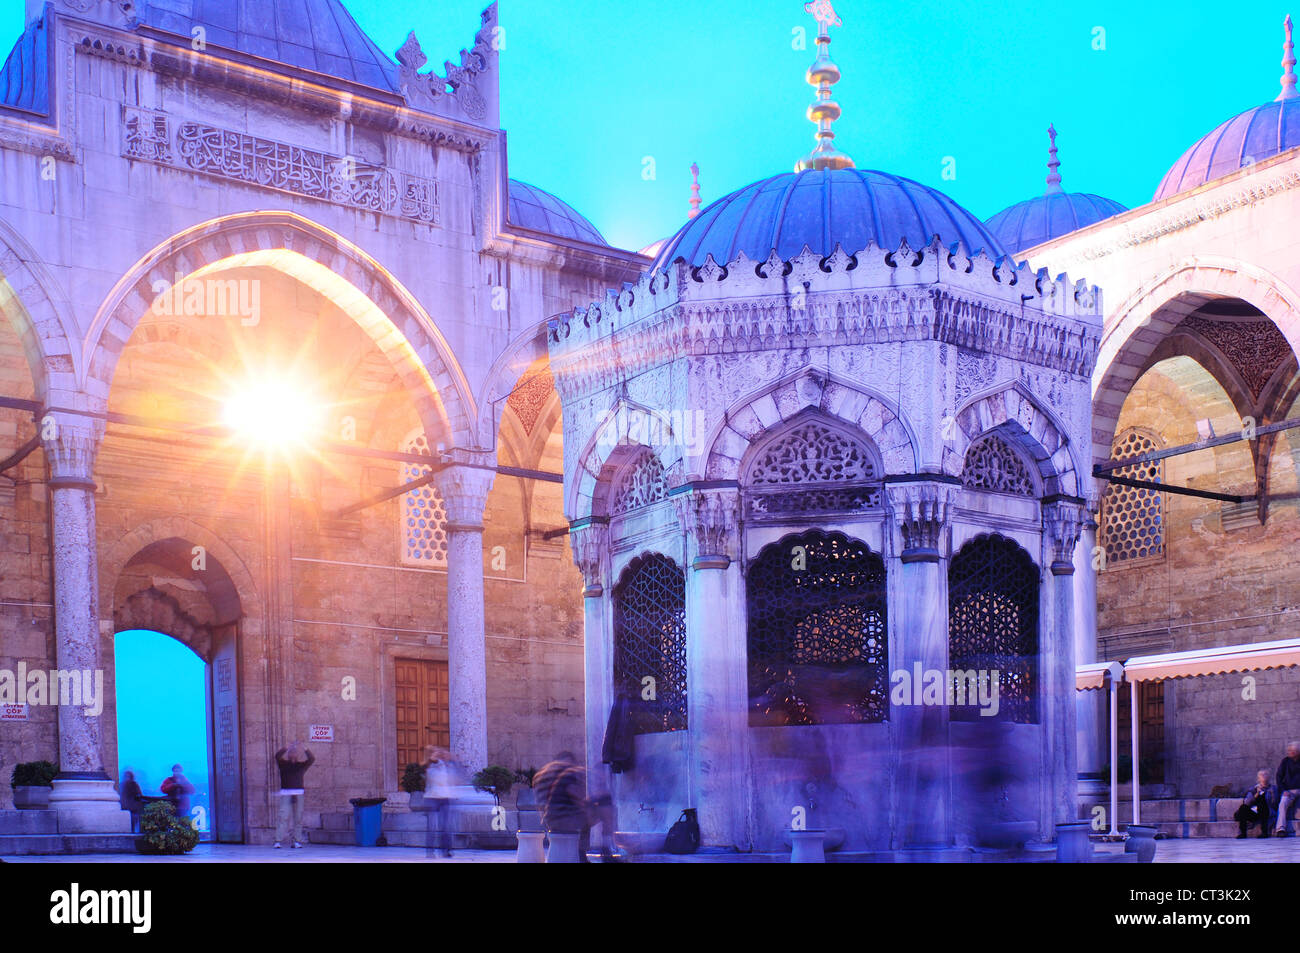 Turkey, Istanbul, The New Mosque or Mosque of the Valide Sultan, Courtyard Stock Photo